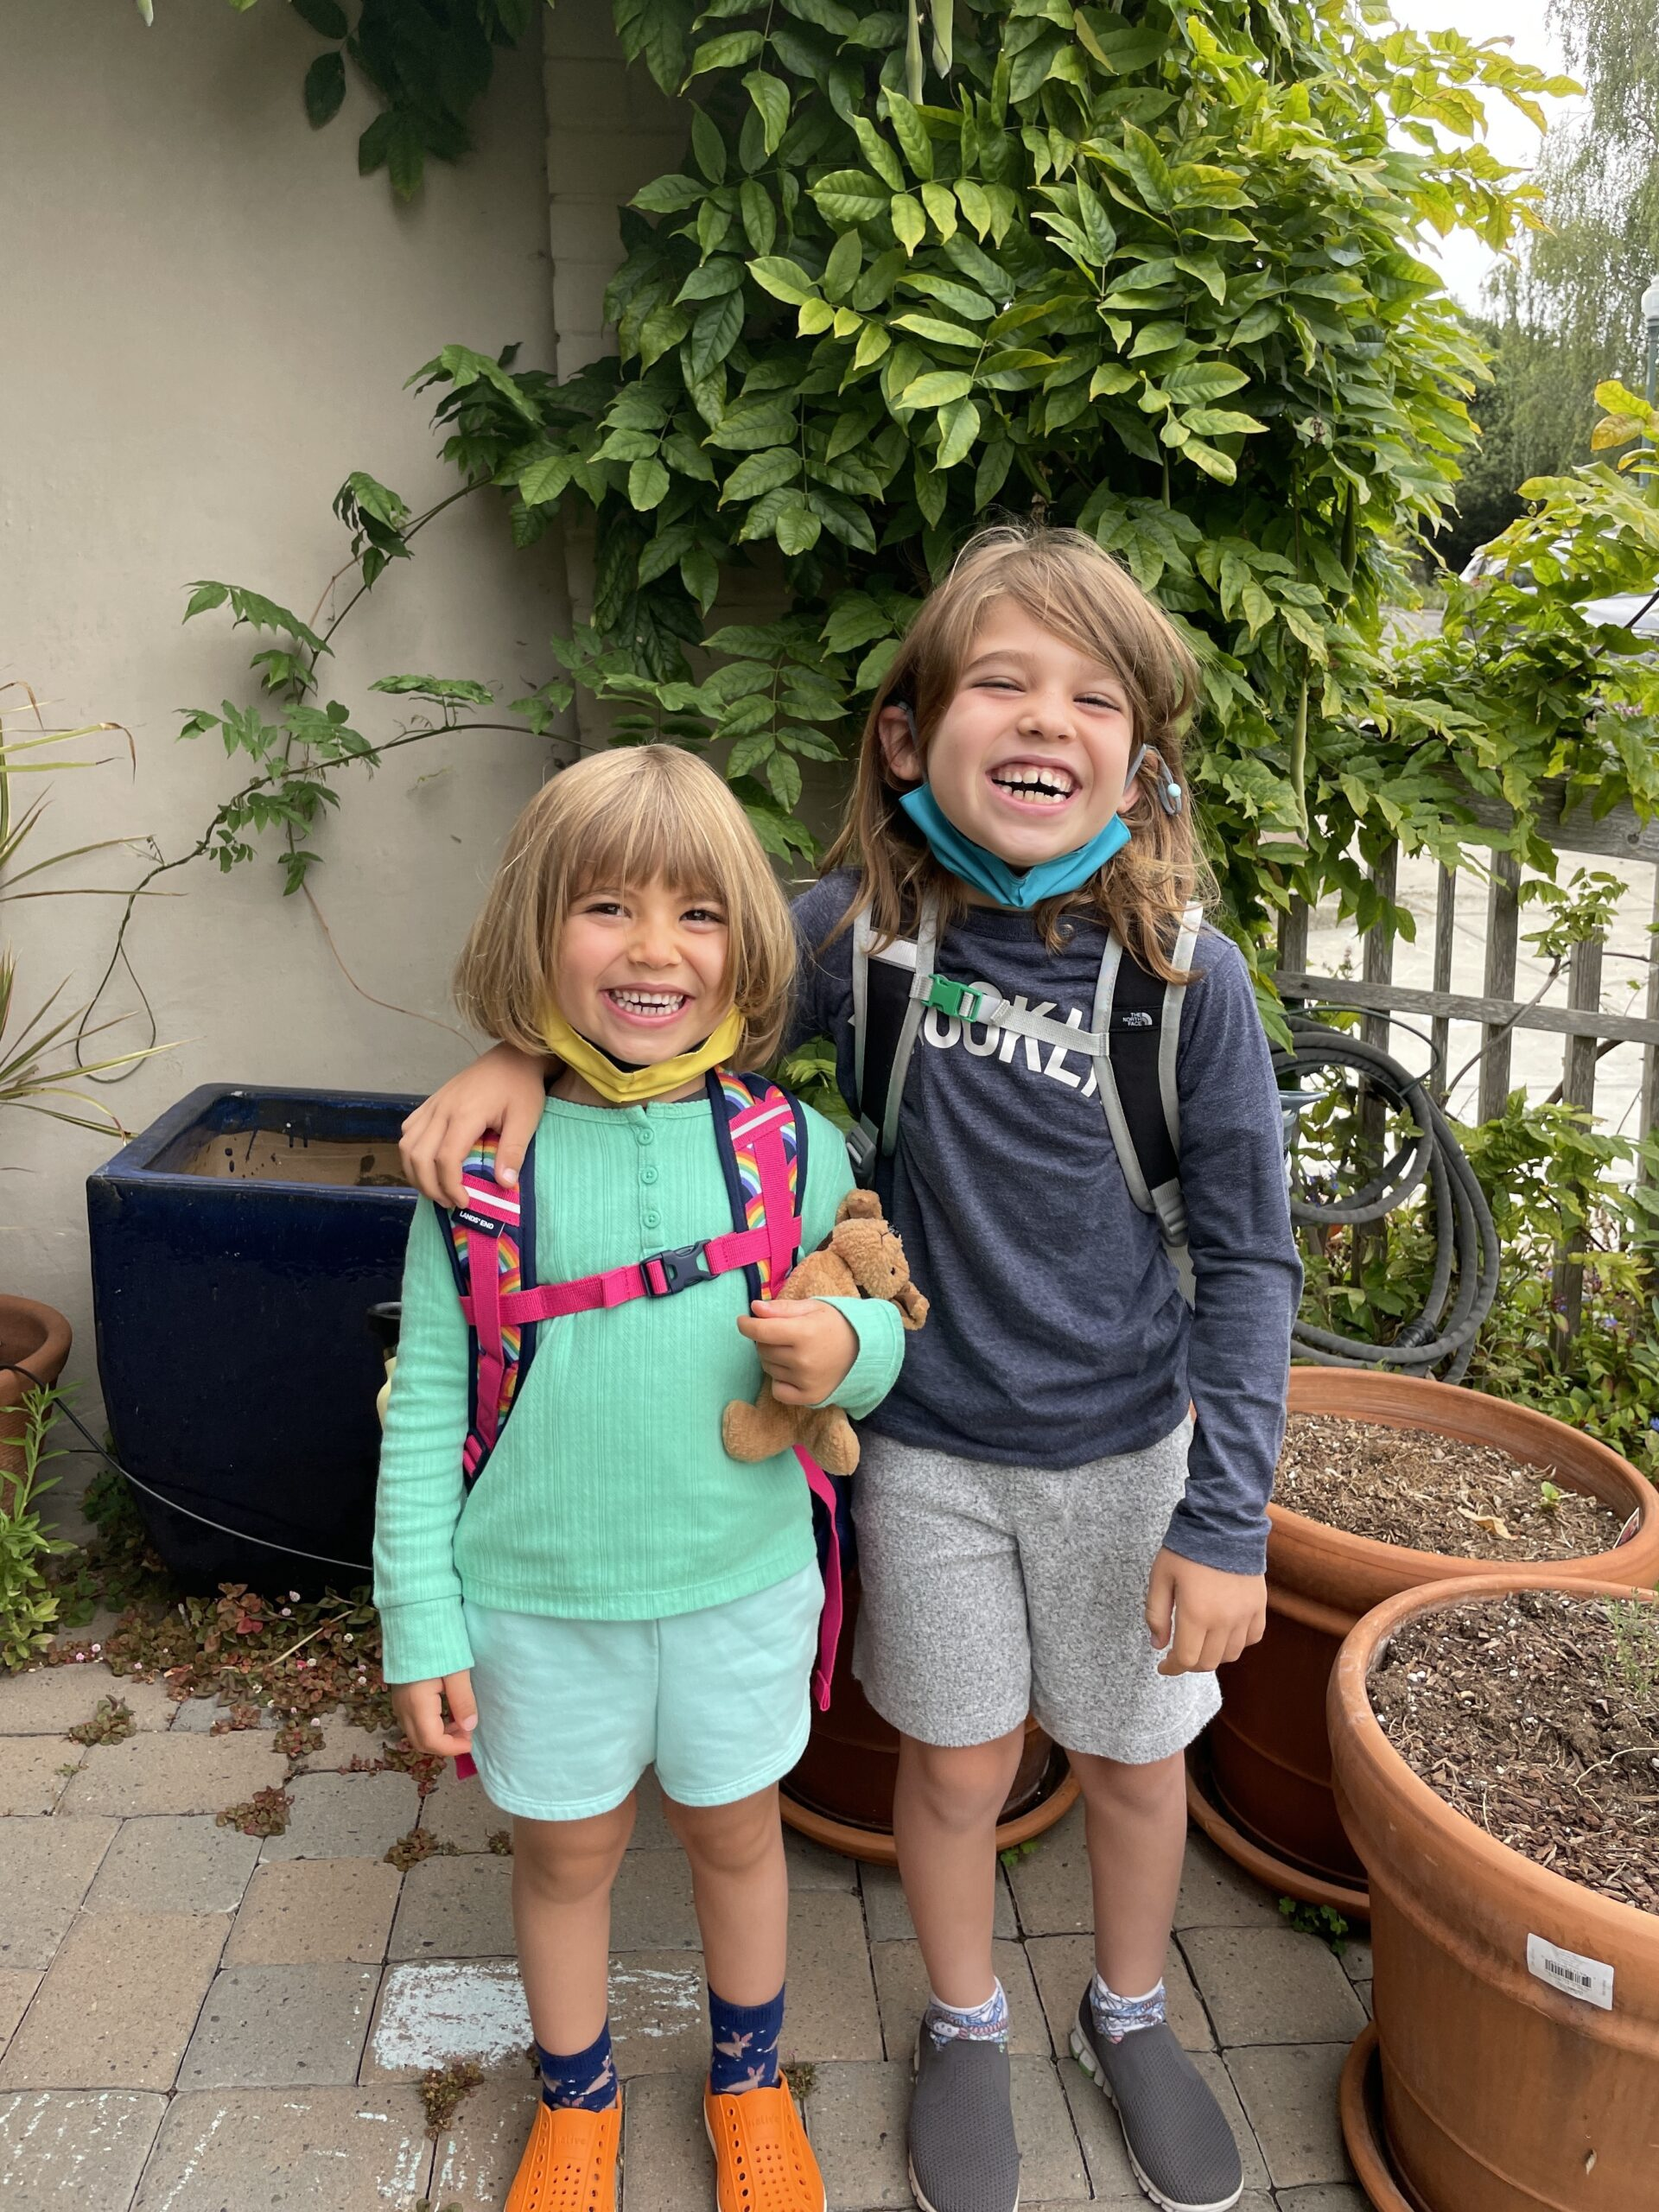 Matt's daughters ready to go back to school